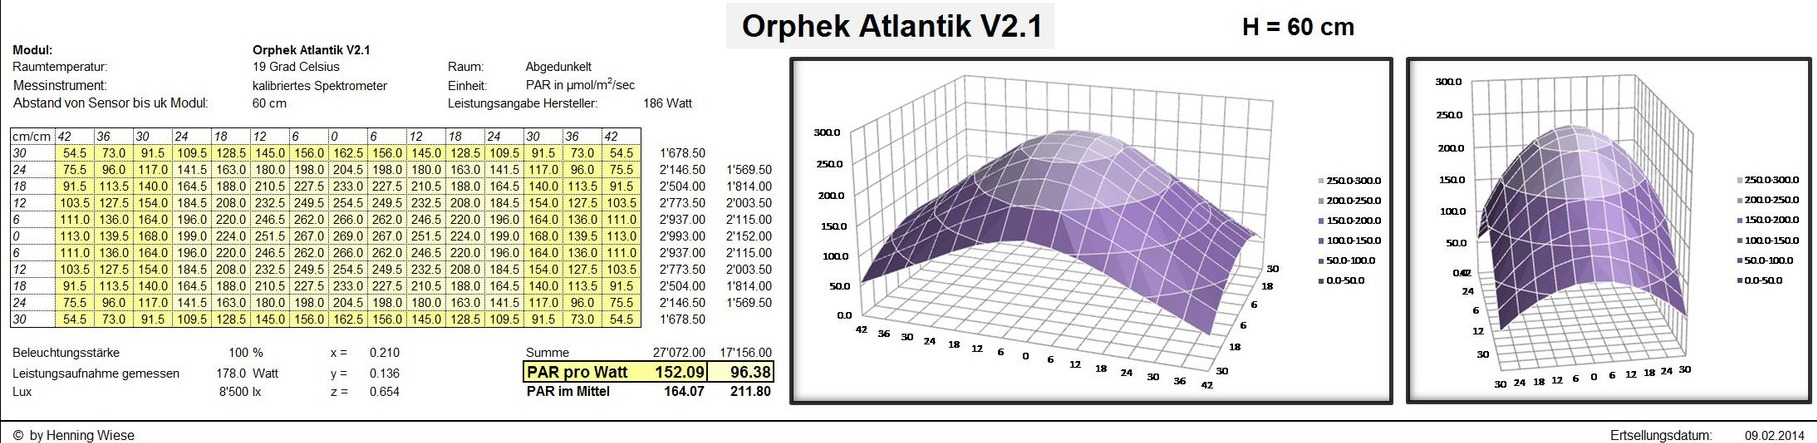 Orphek Atlantik V2.1 LED verligting-PAR MAP-PAR per Watt